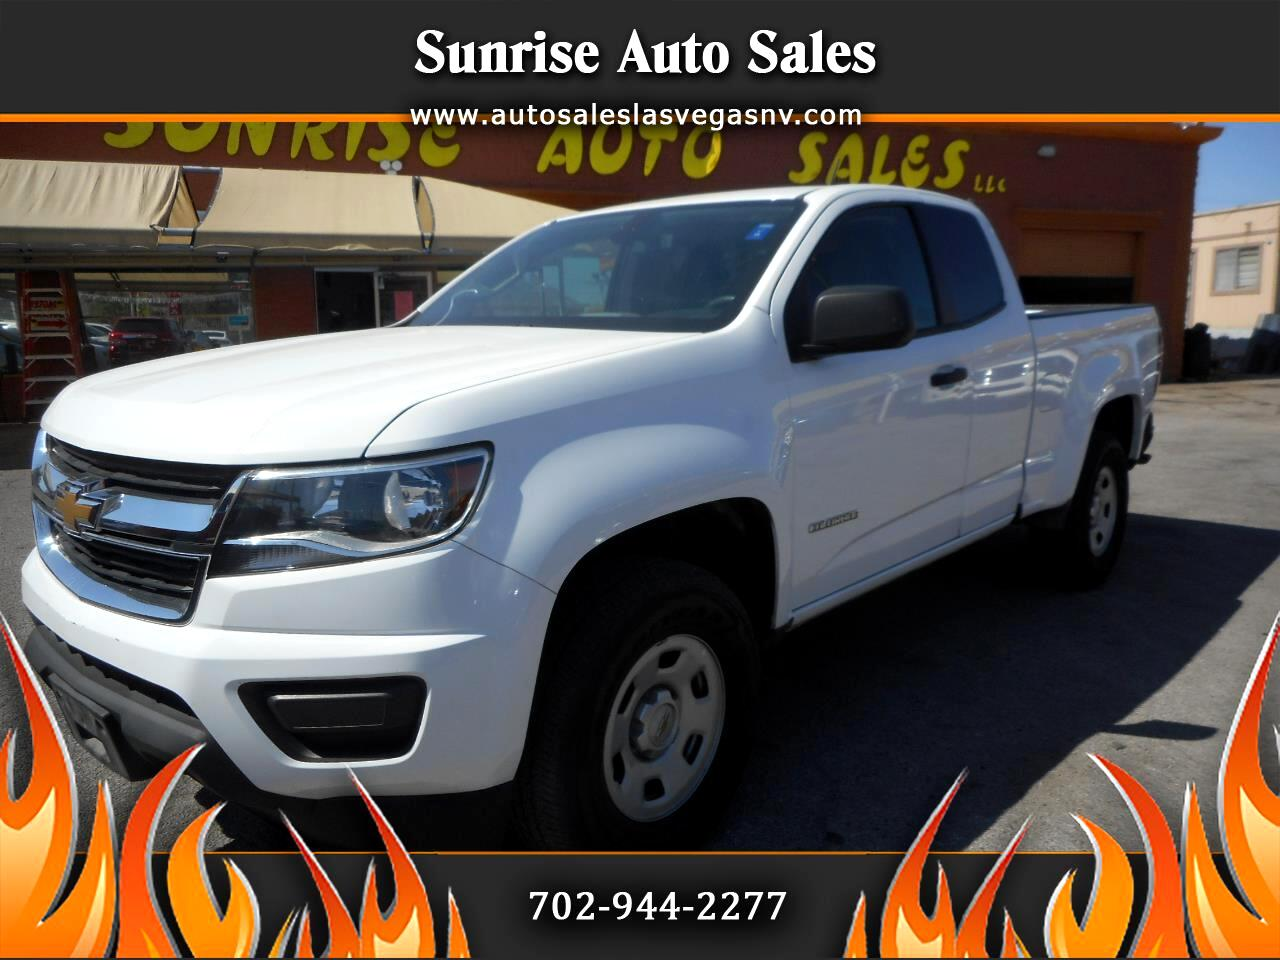 used cars for sale las vegas nv 89110 sunrise auto sales sale las vegas nv 89110 sunrise auto sales